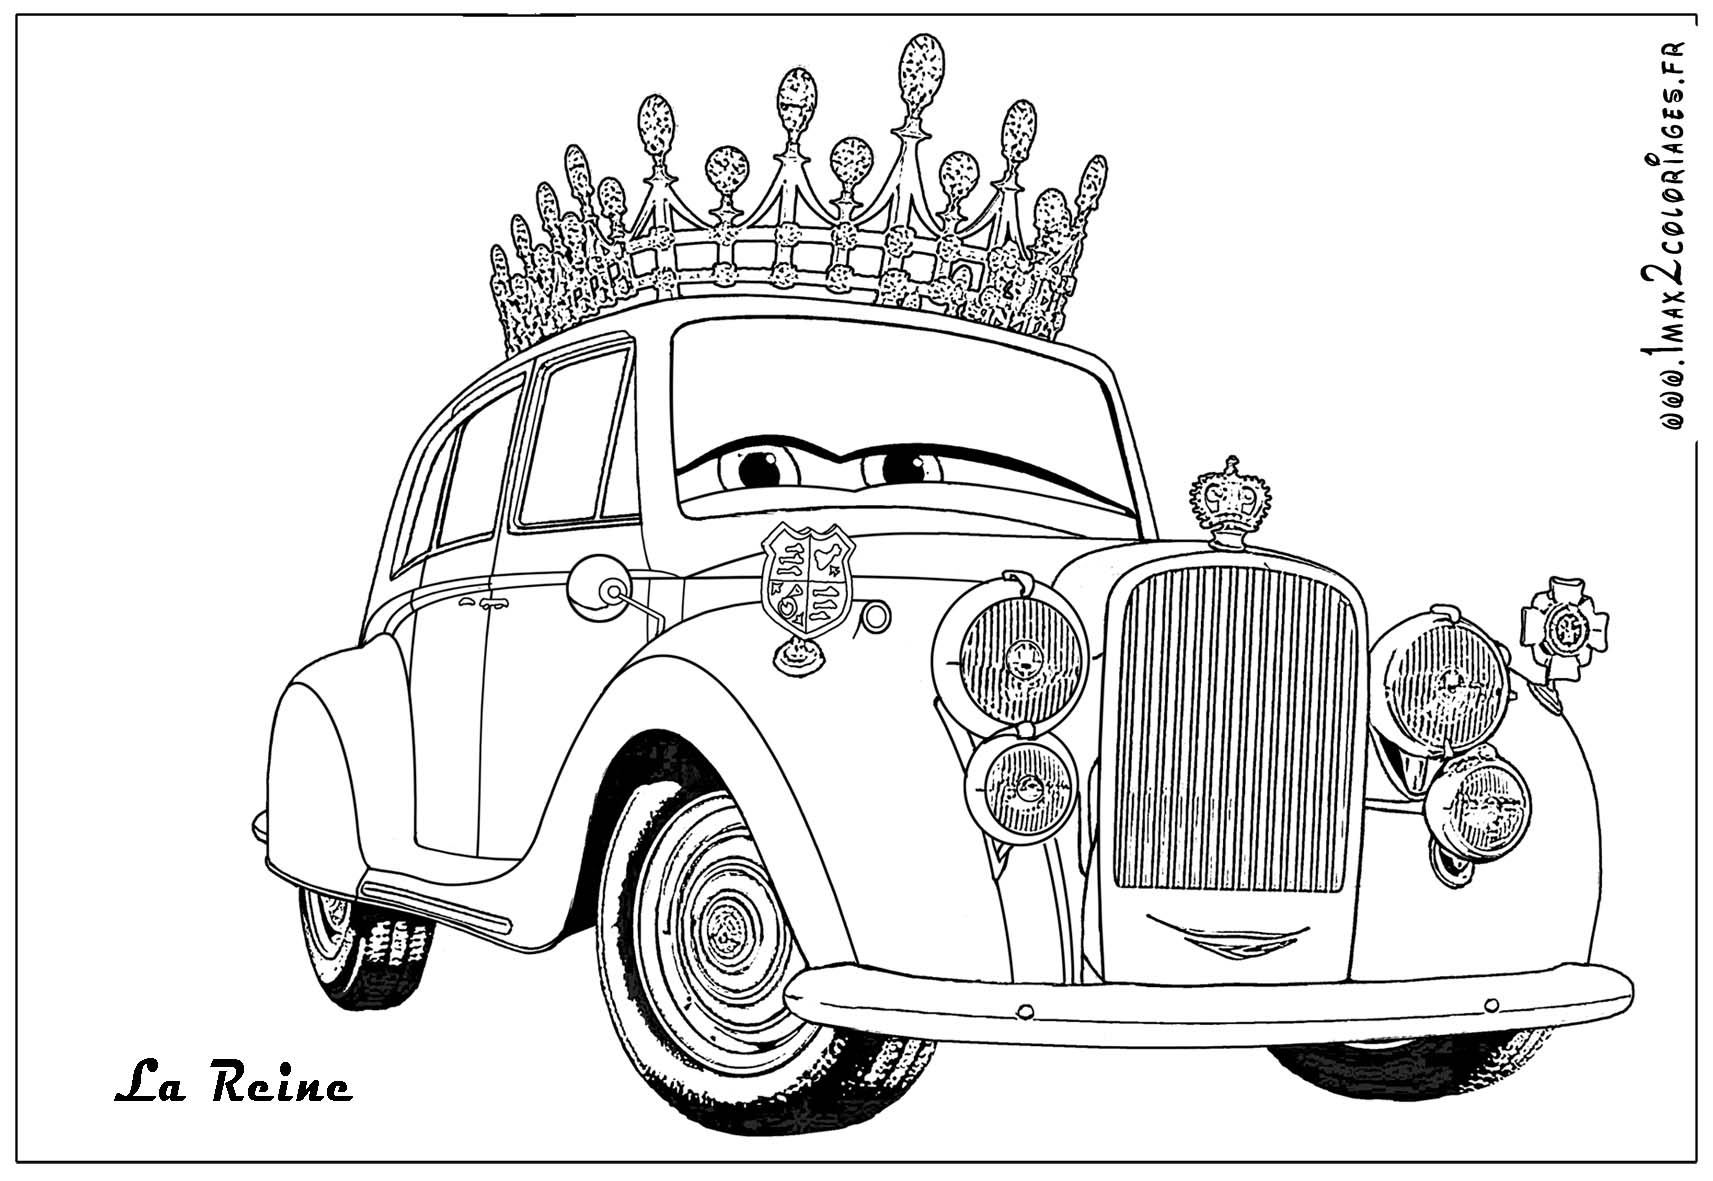 Coloriages cars2 10 coloriage cars 2 coloriages pour - Coloriages de cars ...